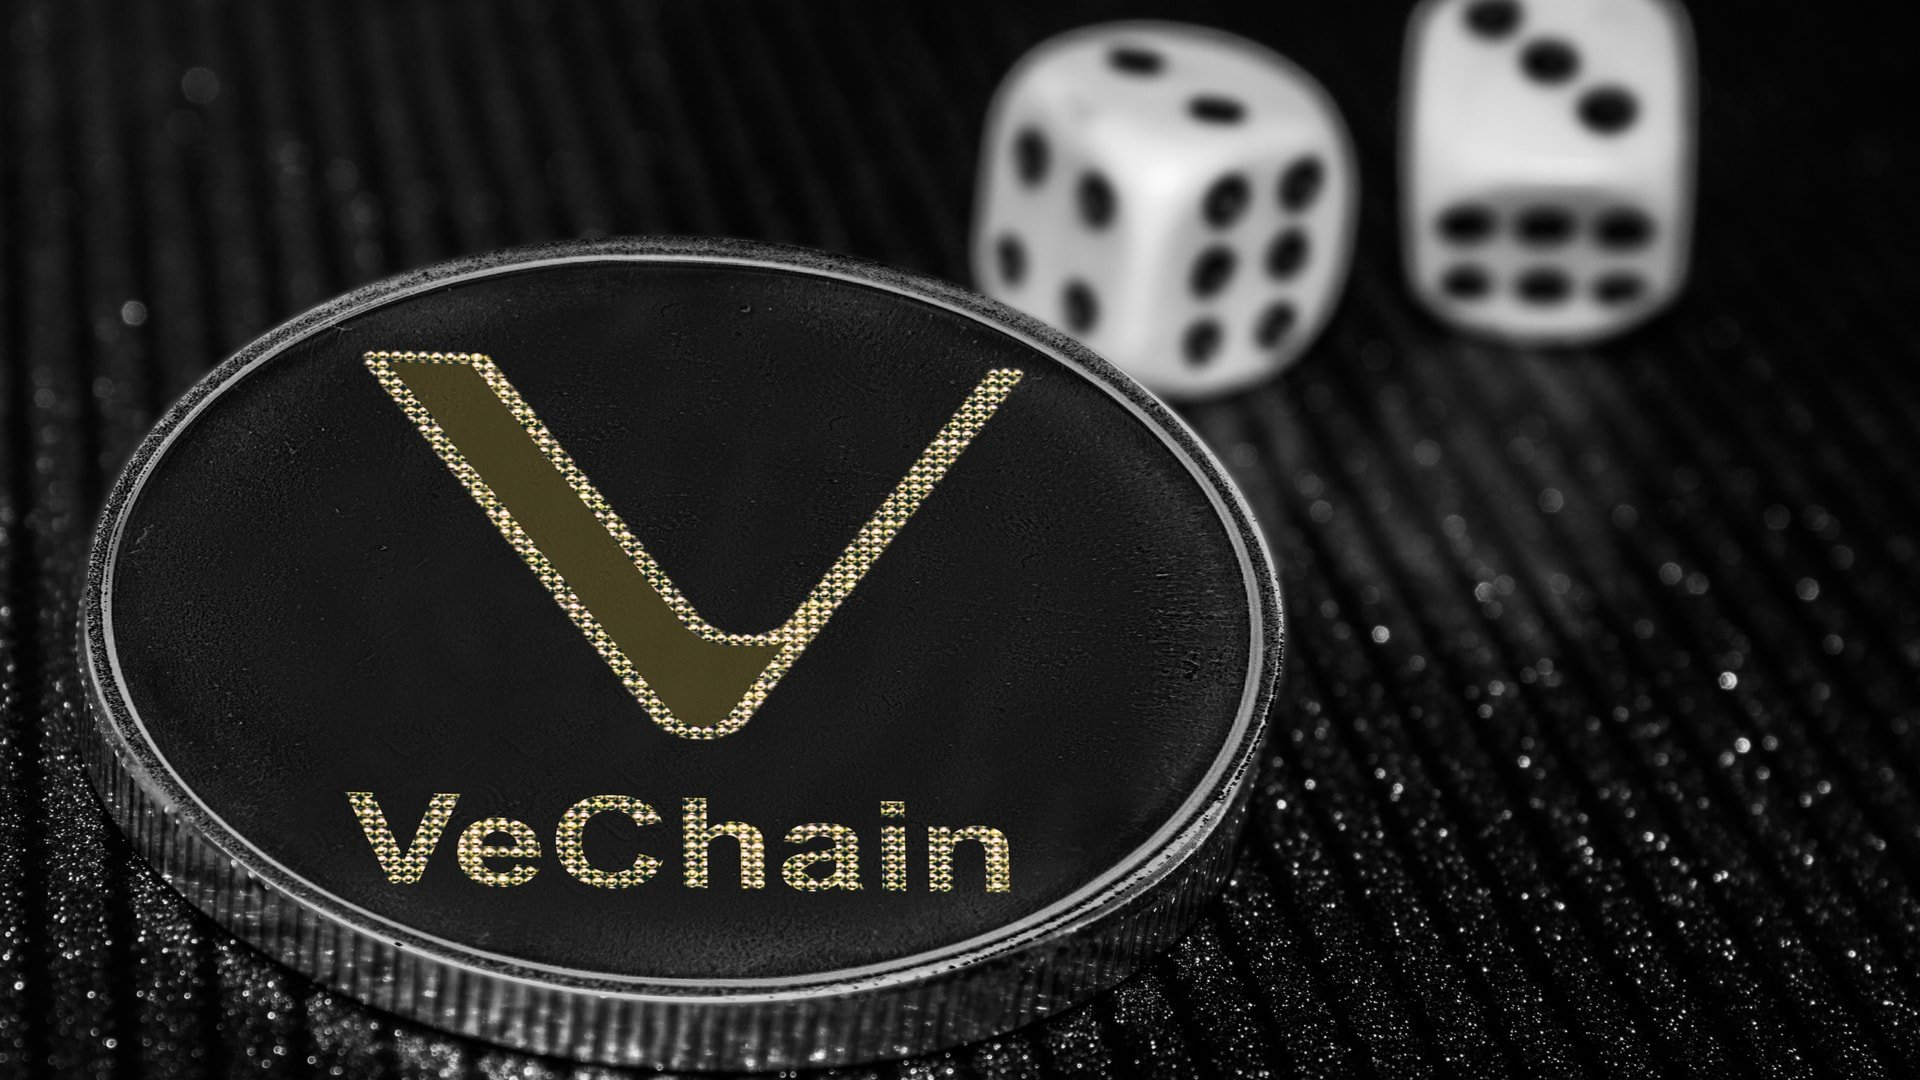 VeChain Price Prediction: VET Could be Close to a Breakout